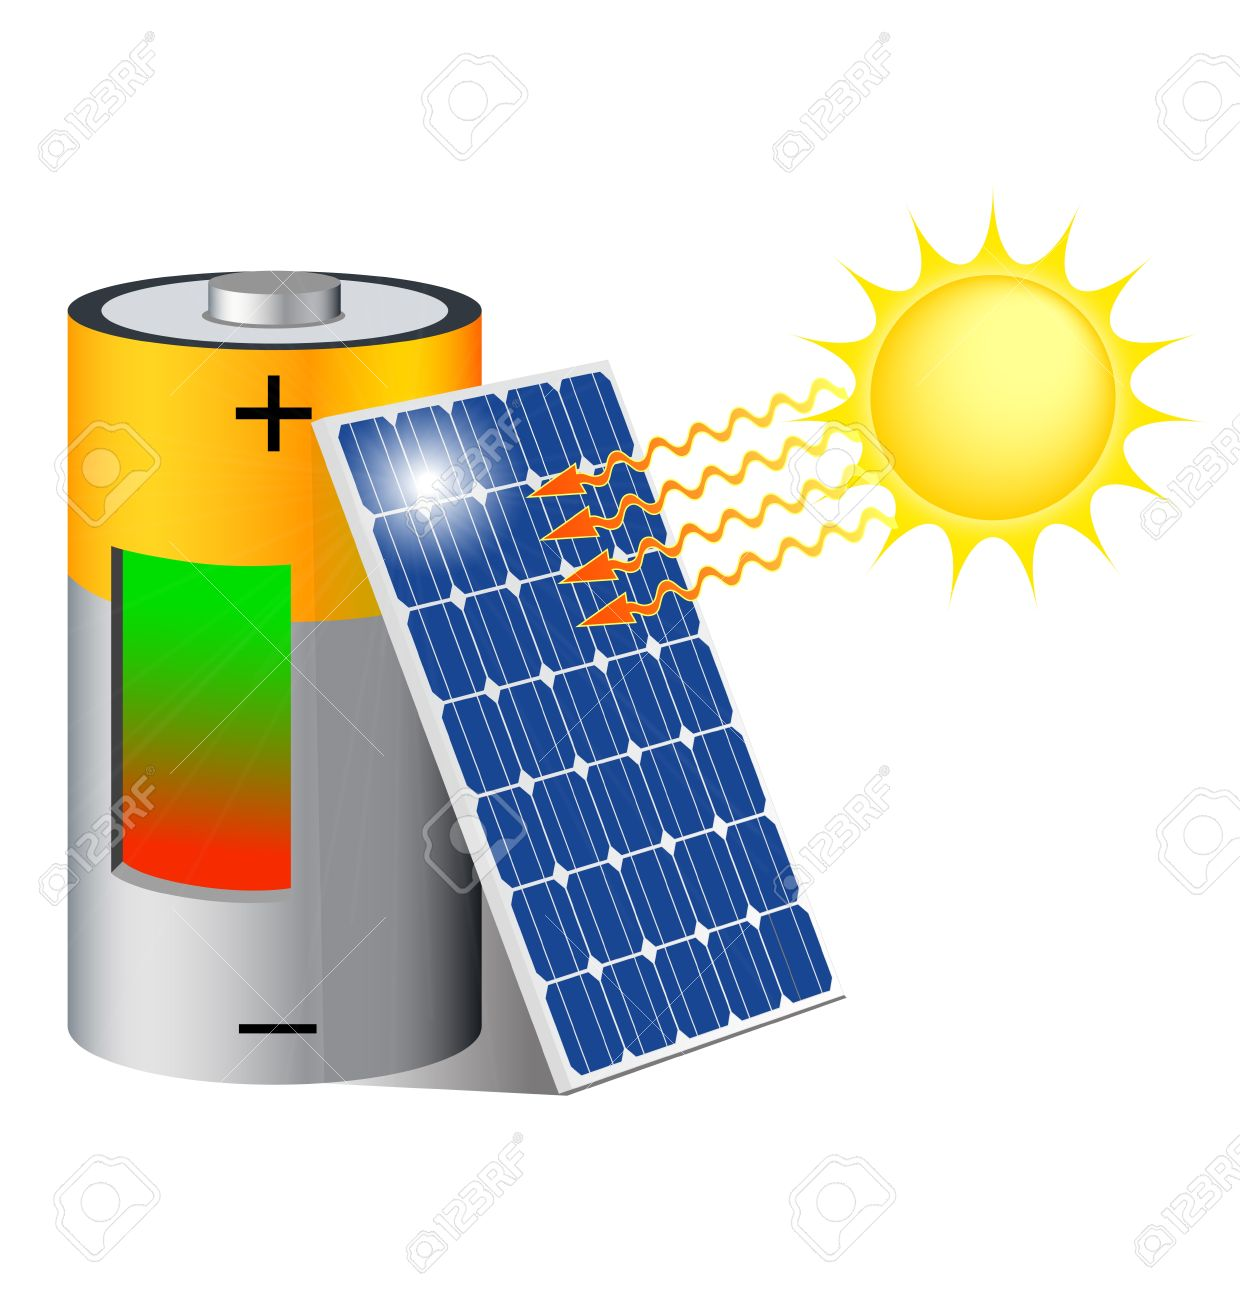 Battery Charging With A Photovoltaic Panel Exposed To The Sun.